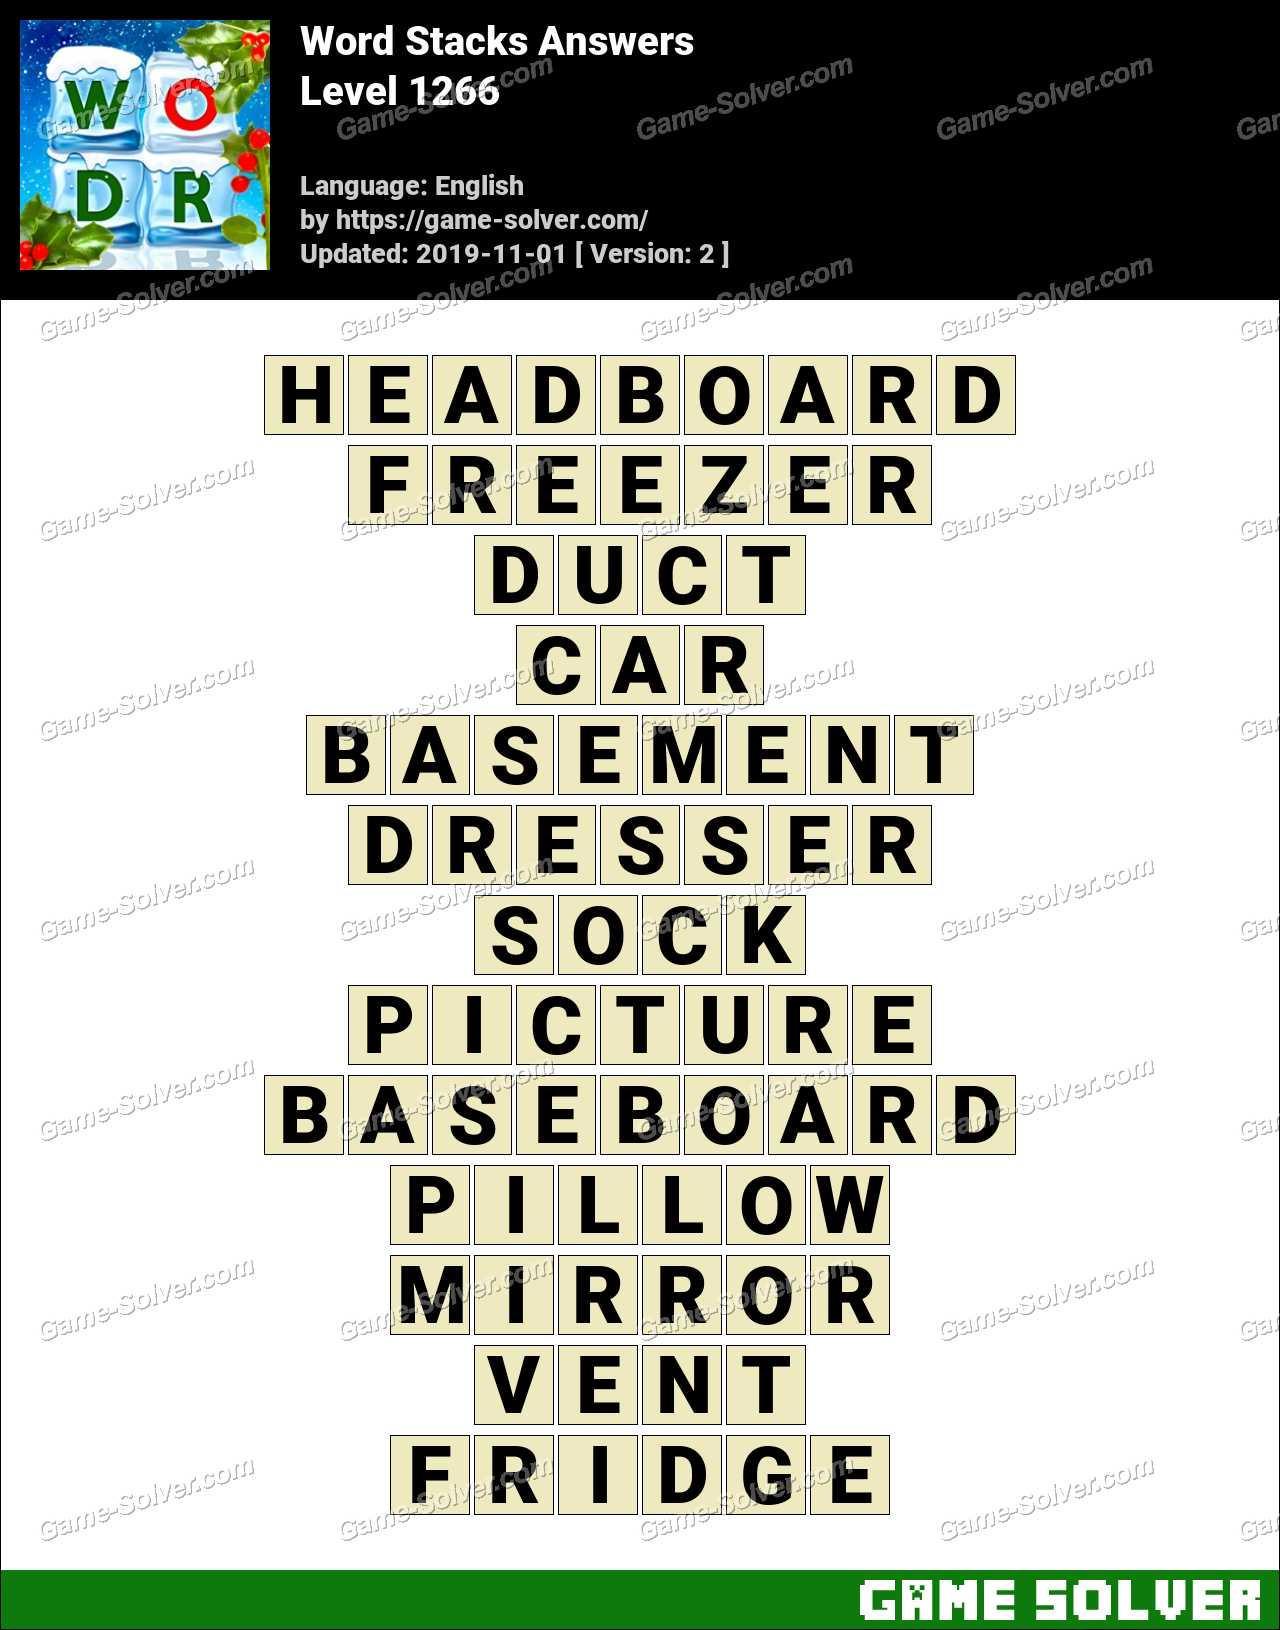 Word Stacks Level 1266 Answers